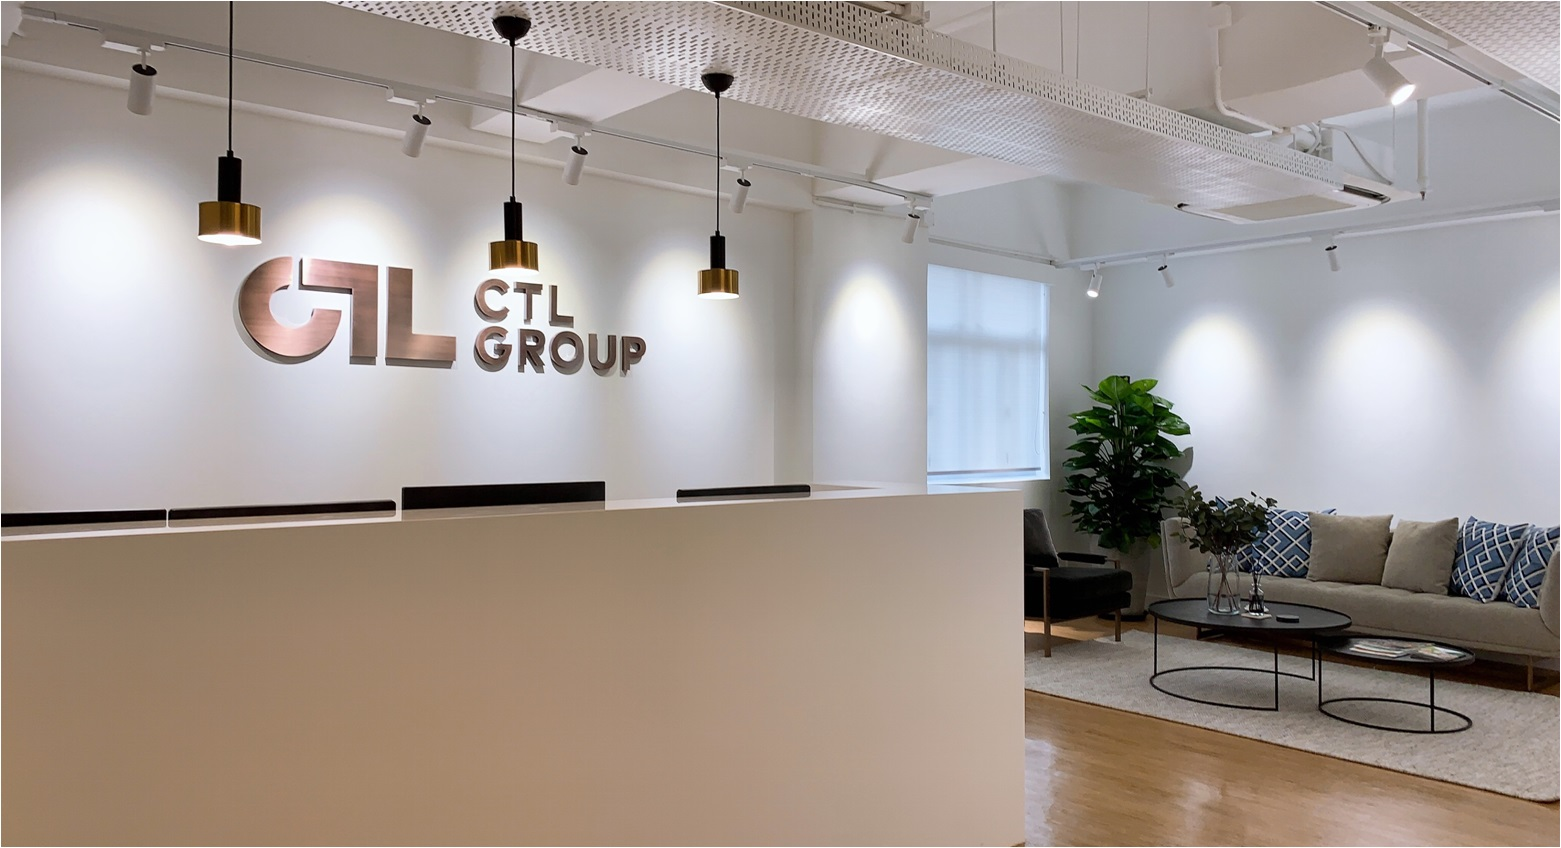 With over two million square feet of property completed and in development, we continue to strive for sustainable and innovative projects to shelter our communities. CTL Group also operates a diverse range of businesses across China and Hong Kong which includes, hotels, serviced apartments, property leasing, nursing home, F&B outlets, Food & Wine distribution and retail of healthcare products.